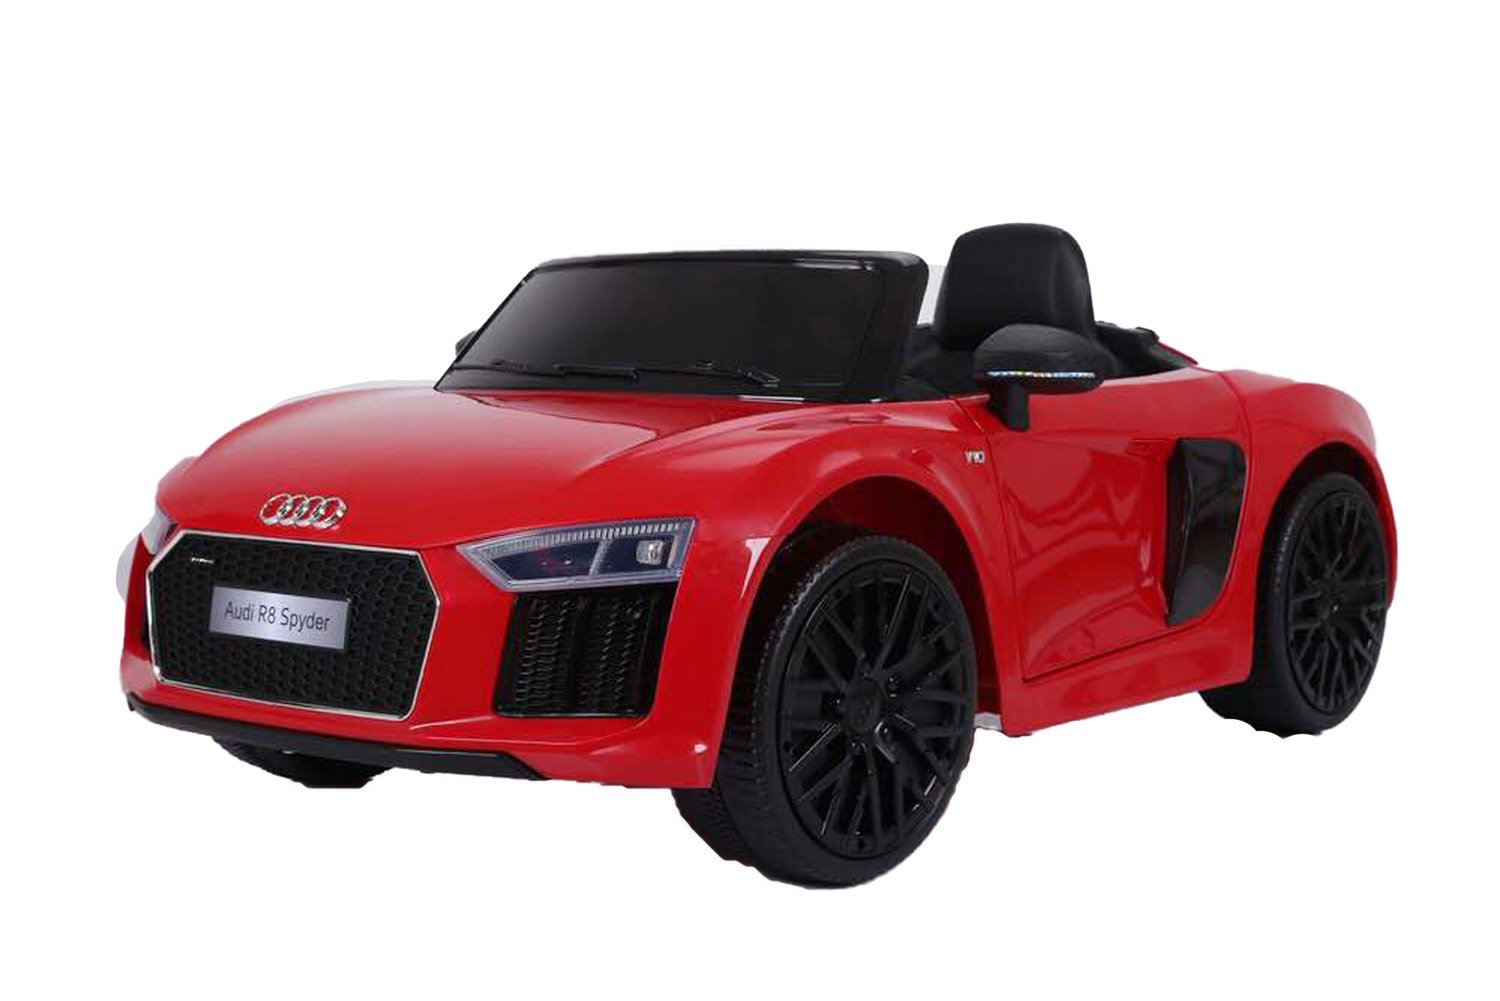 GetBest Audi R14 Spyder Battery Operated Kids Ride on Car with Remote (Red) | minimum price of audi car